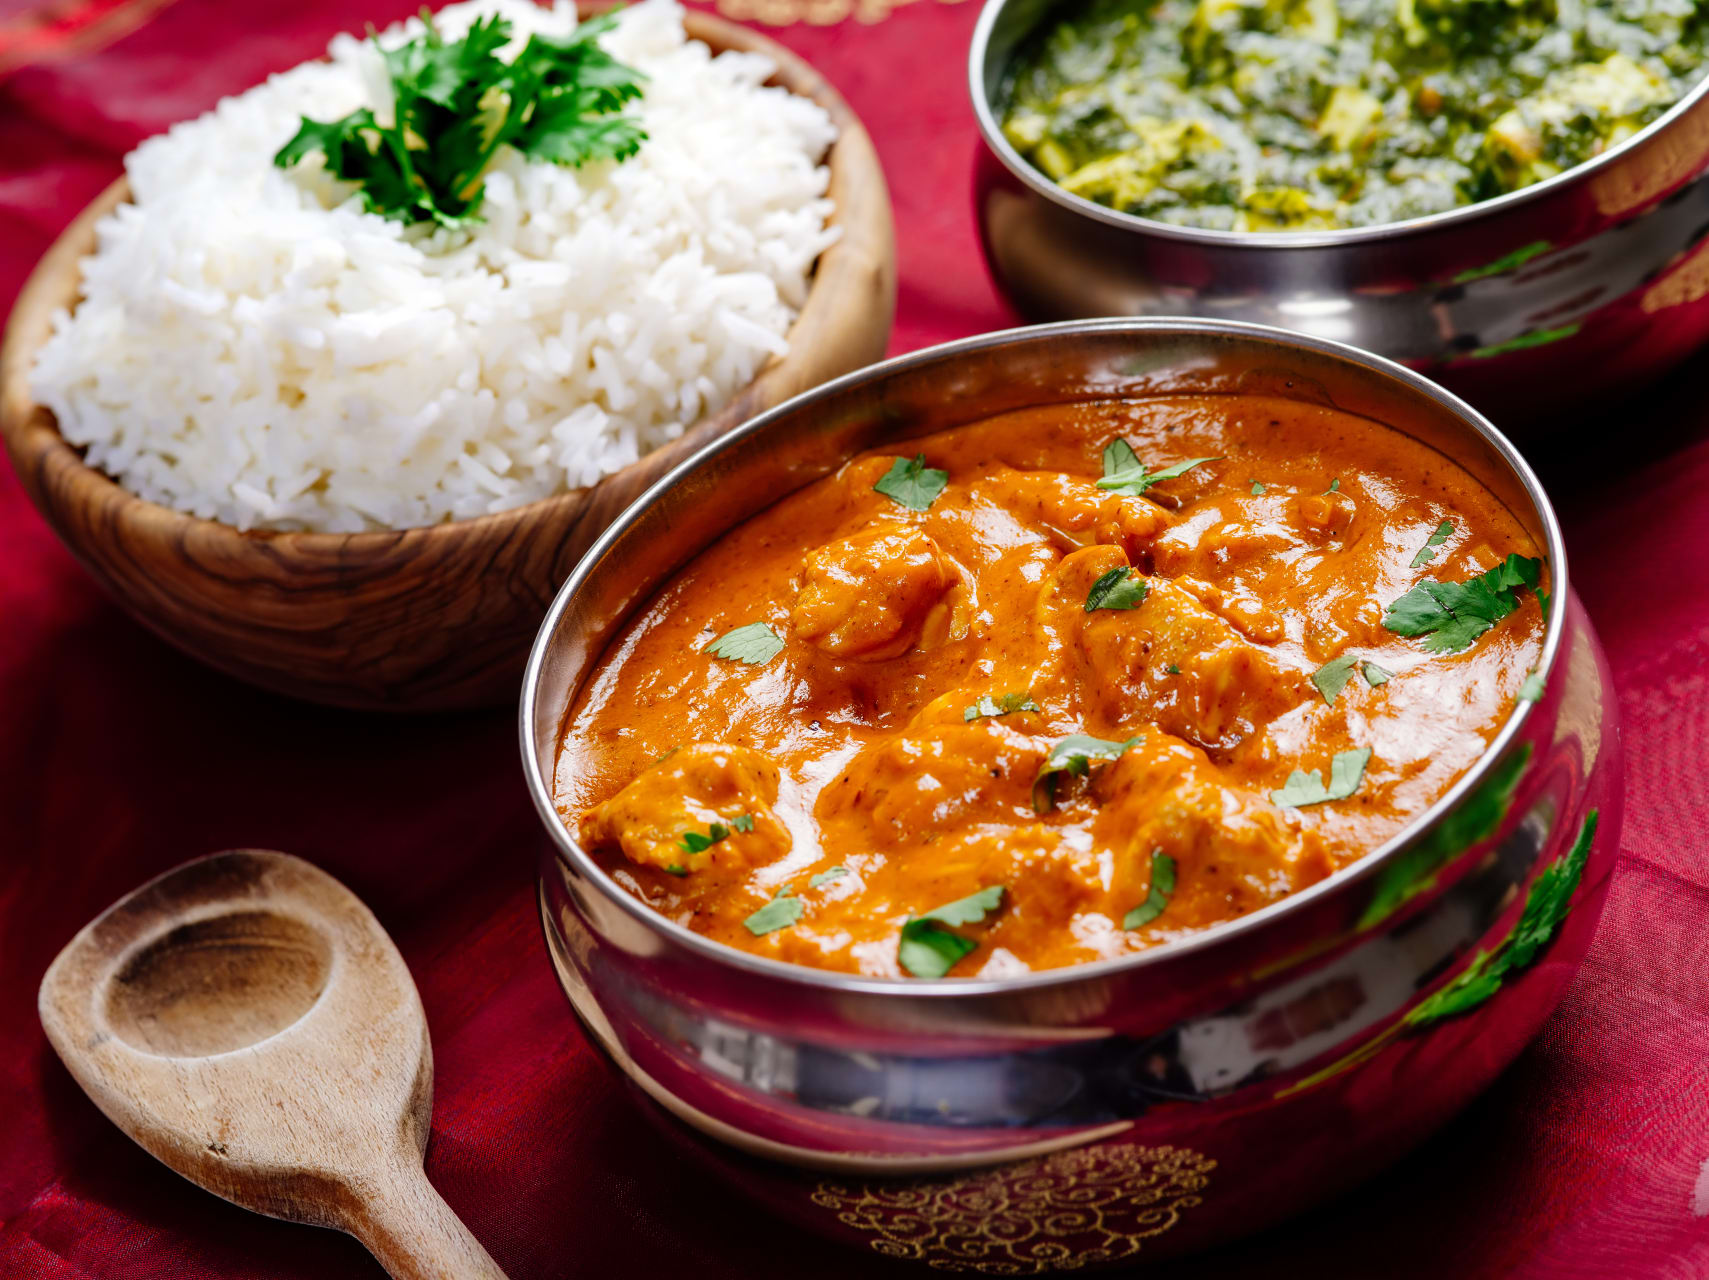 Delhi - Let's cook the most famous and delicious Indian Butter Chicken